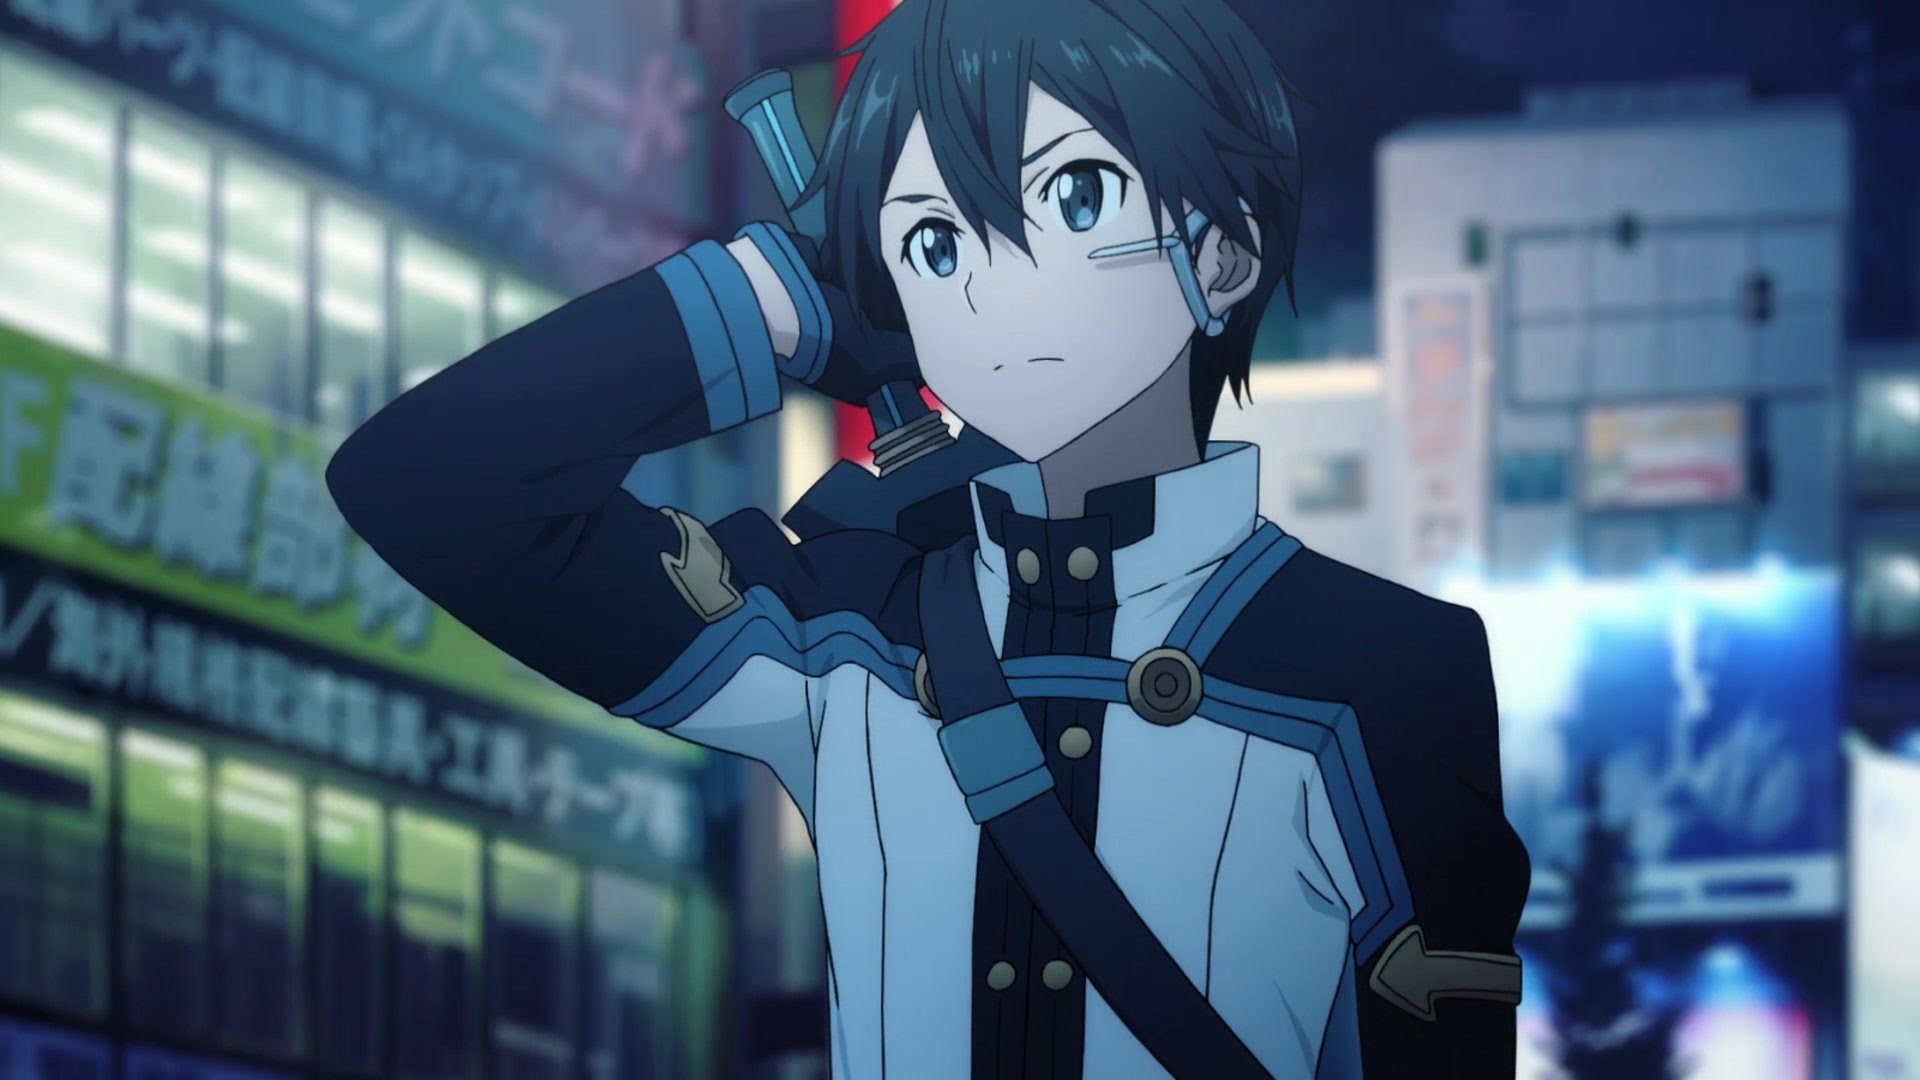 Sword Art Online Wallpapers Anime Hq Sword Art Online Pictures